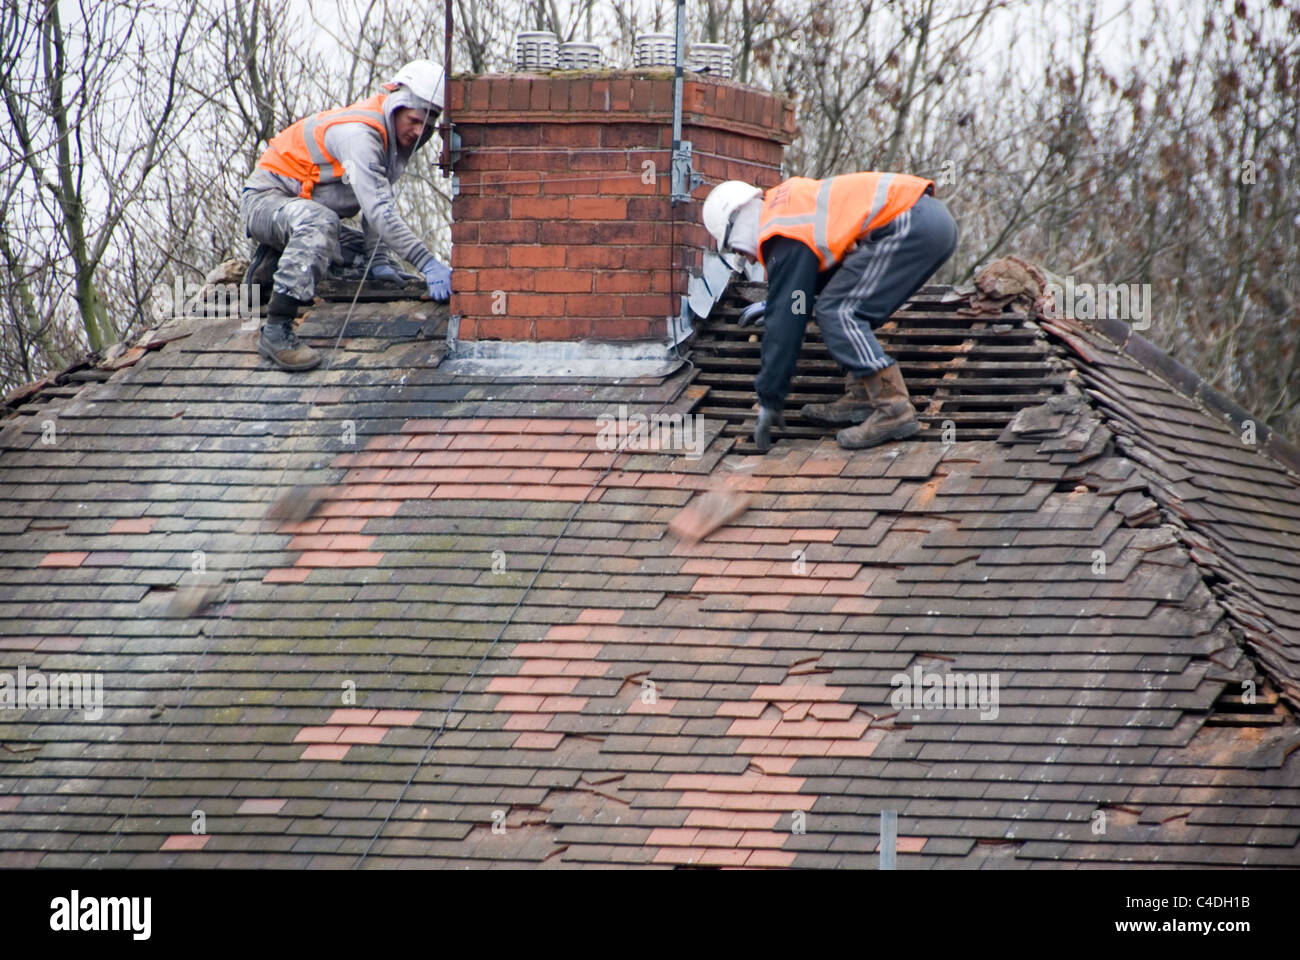 Stock Photo   Two Men Roof Of House Roof Stripping Off Old Tiles Re Roofing  ACIS Properties Hastilar Road South Sheffield March 2011